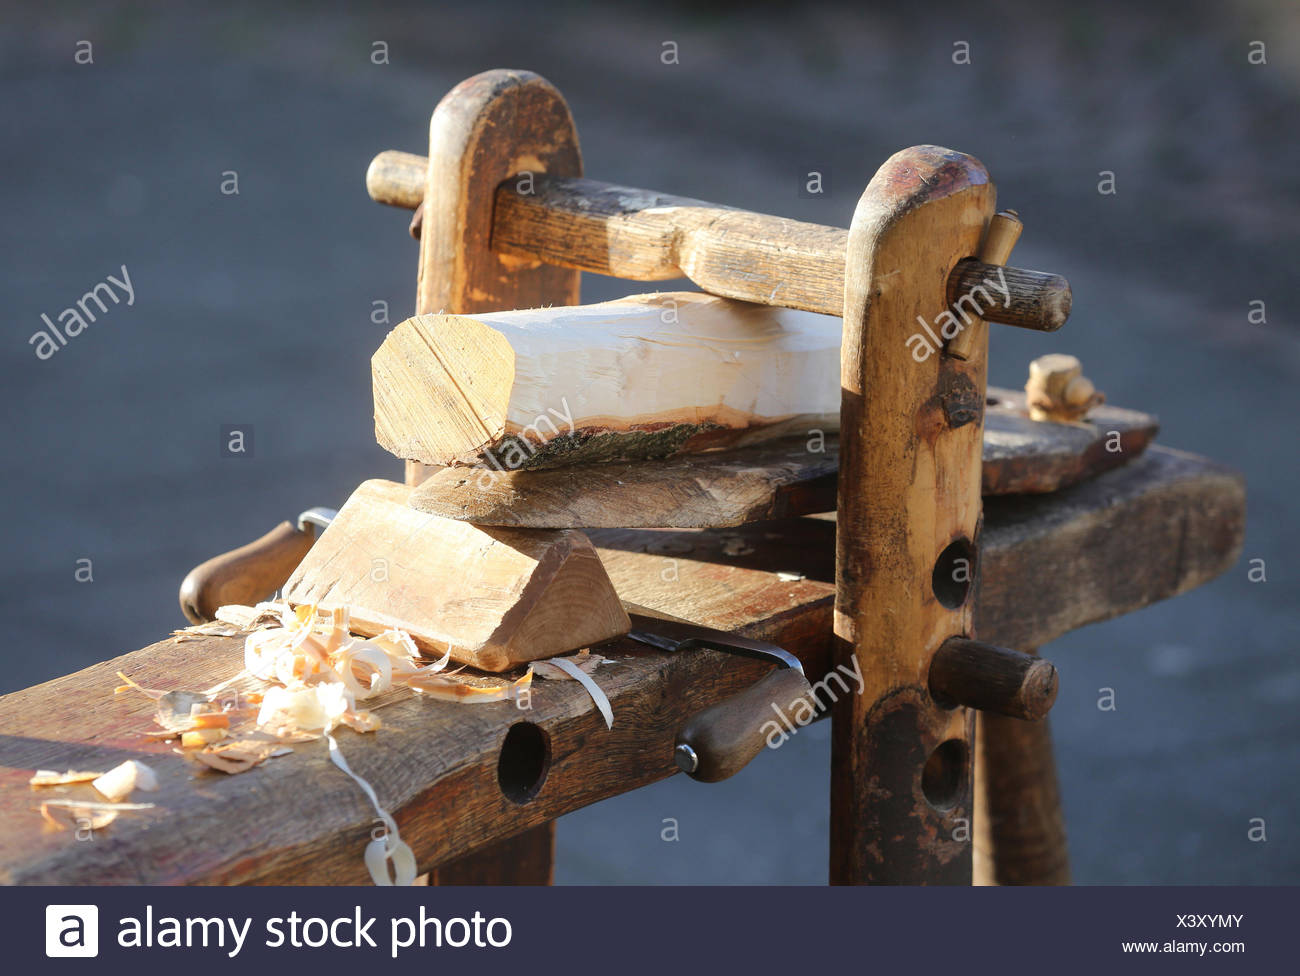 holzhobel stockfotos & holzhobel bilder - alamy